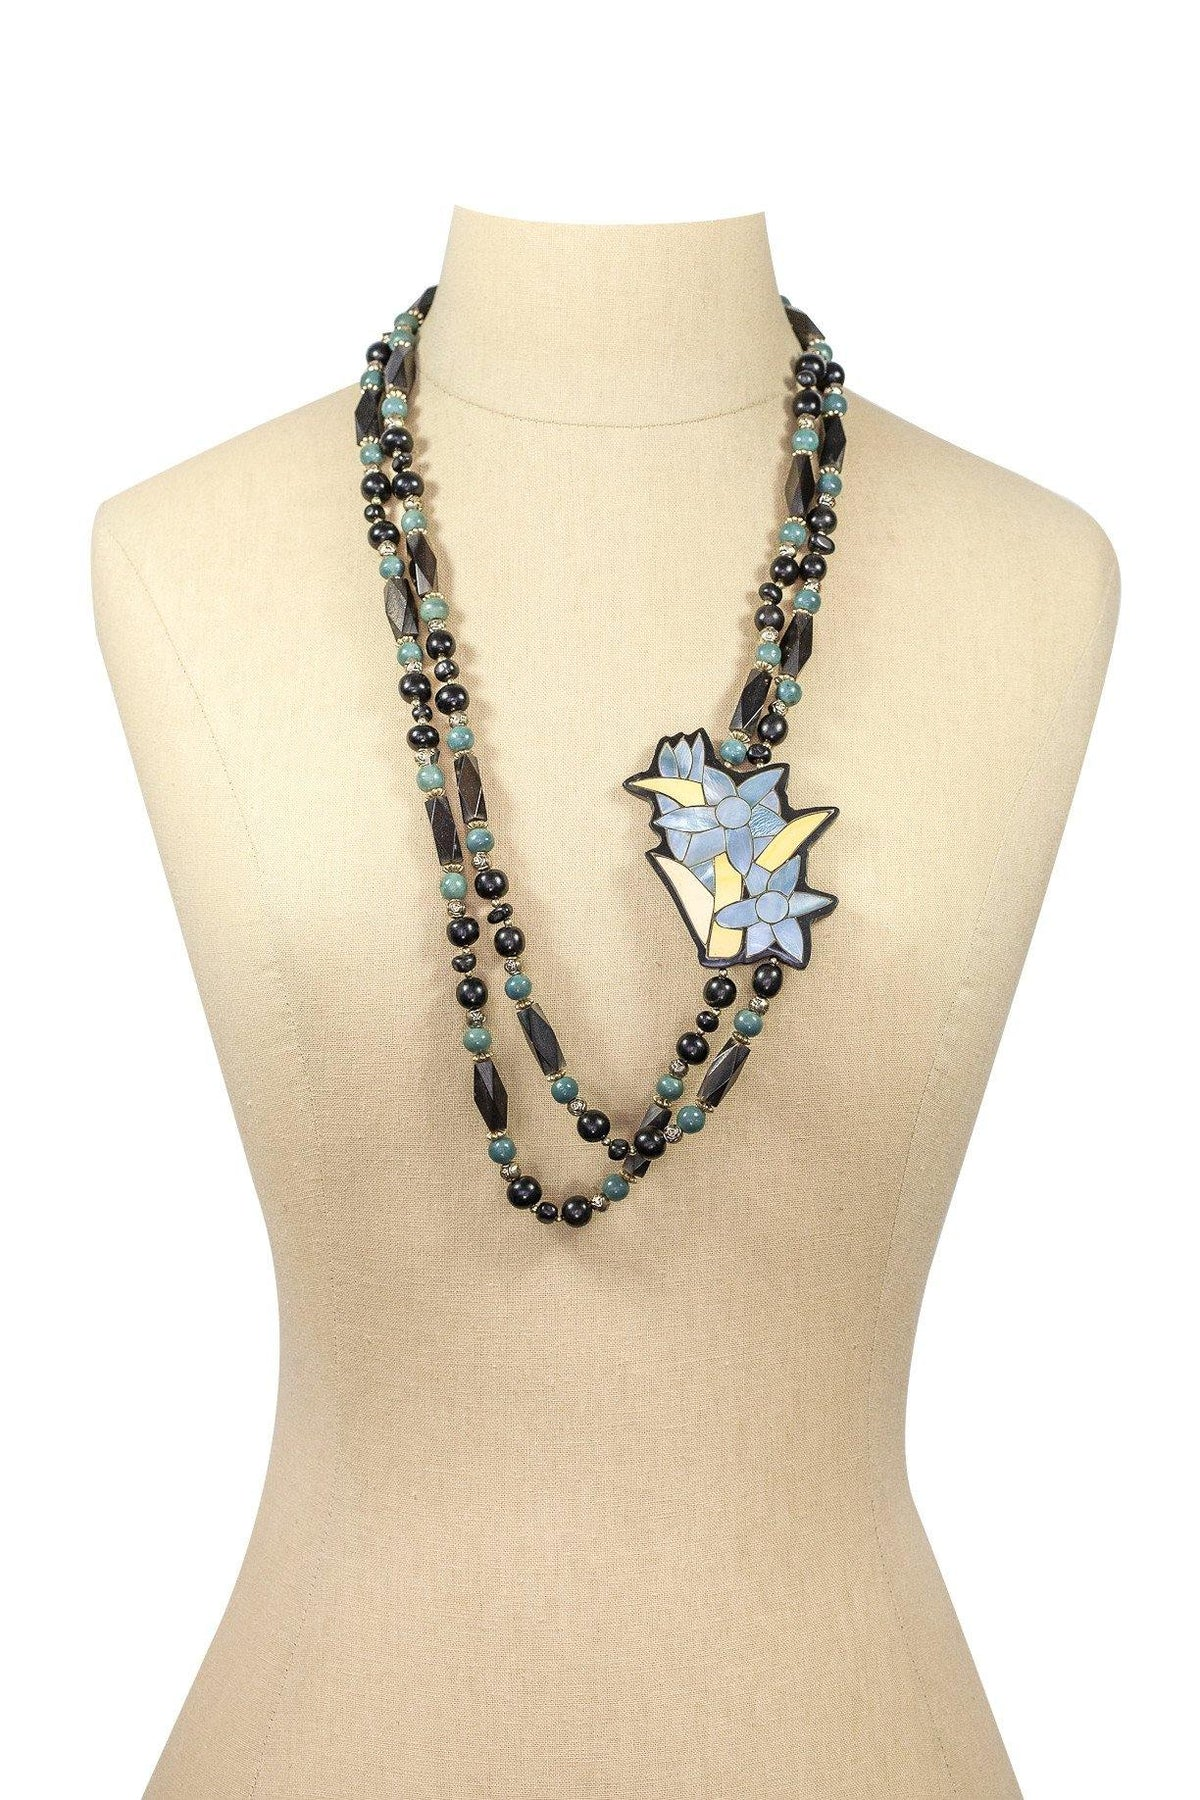 80's Vintage Beaded Necklace